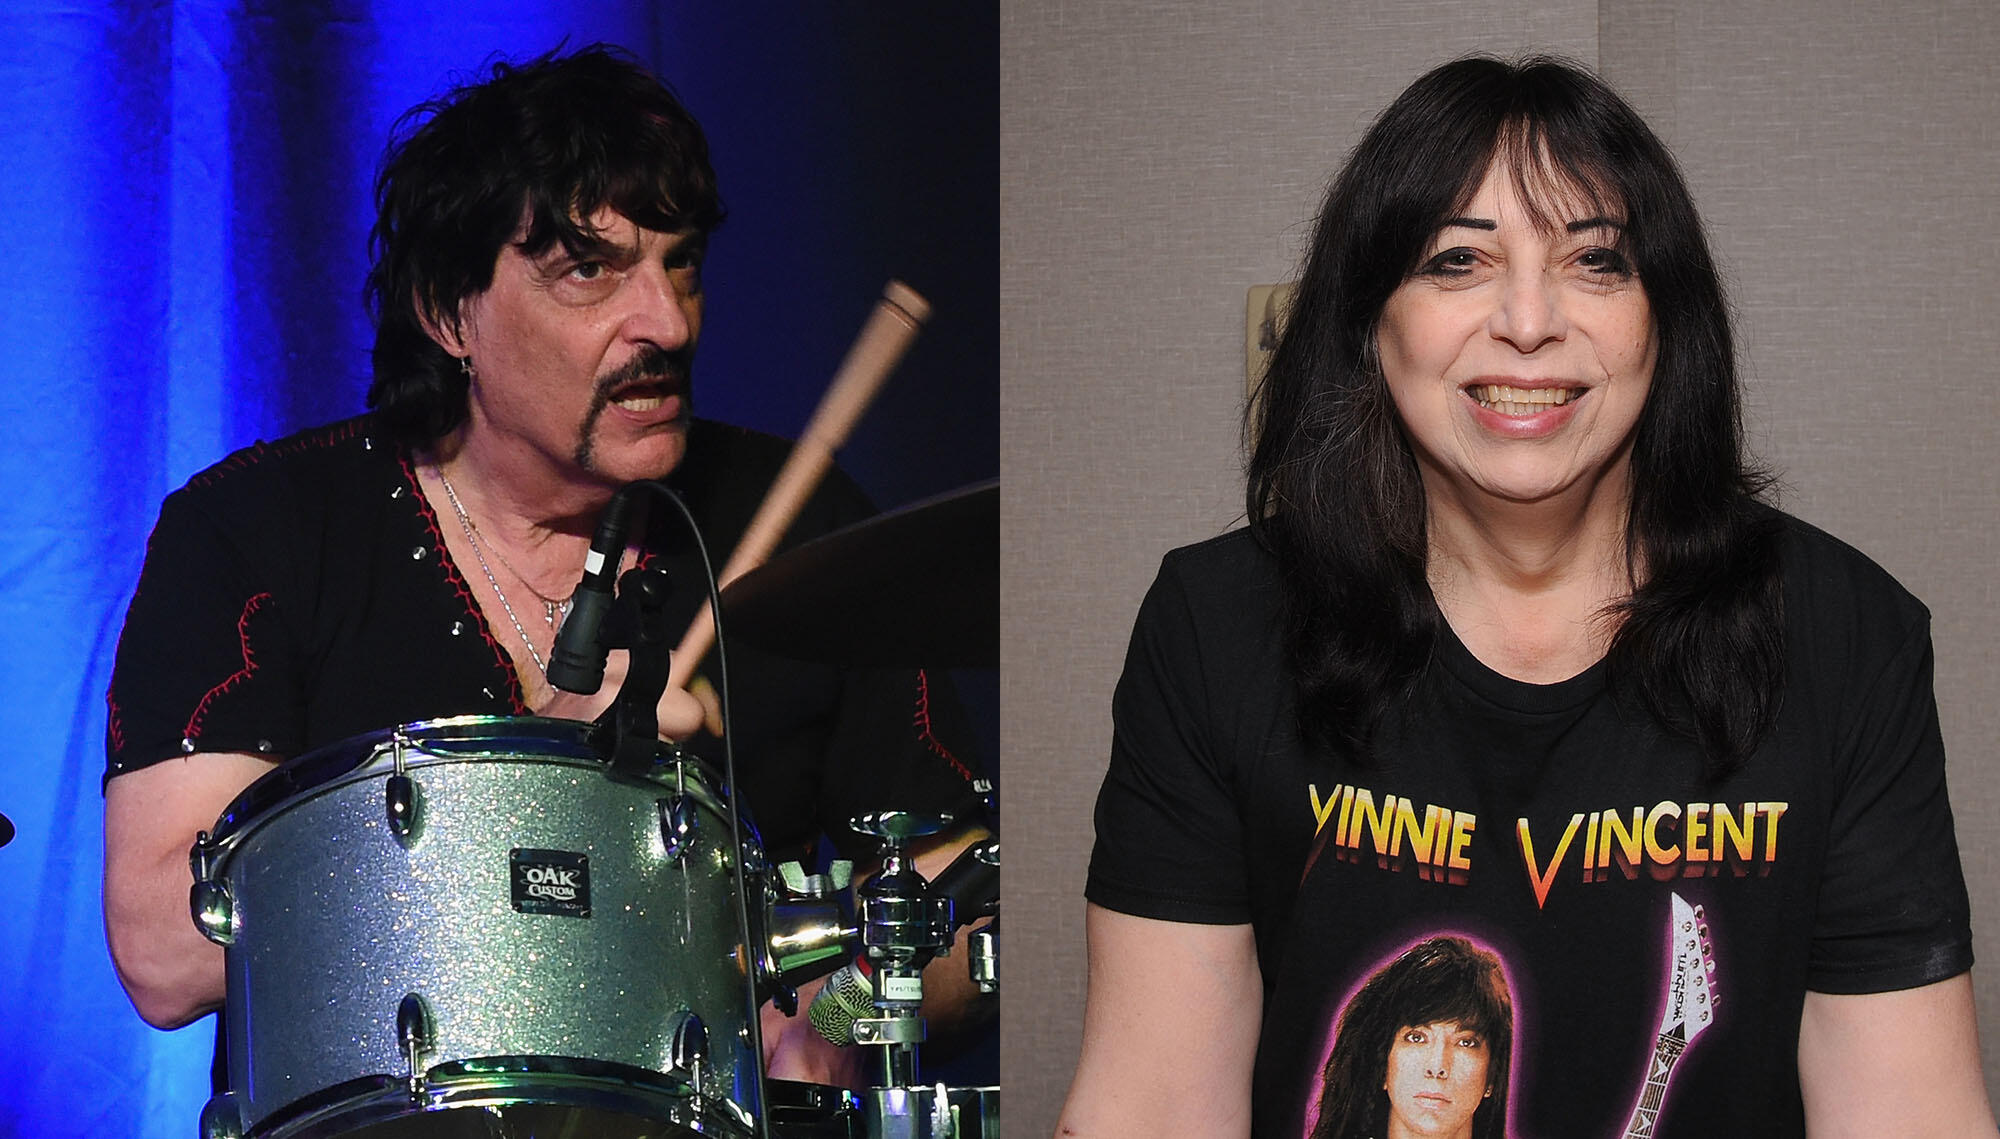 If You Don T Get Lost There S A Chance: Vinnie Vincent Blew Last Chance With Comeback Debacle